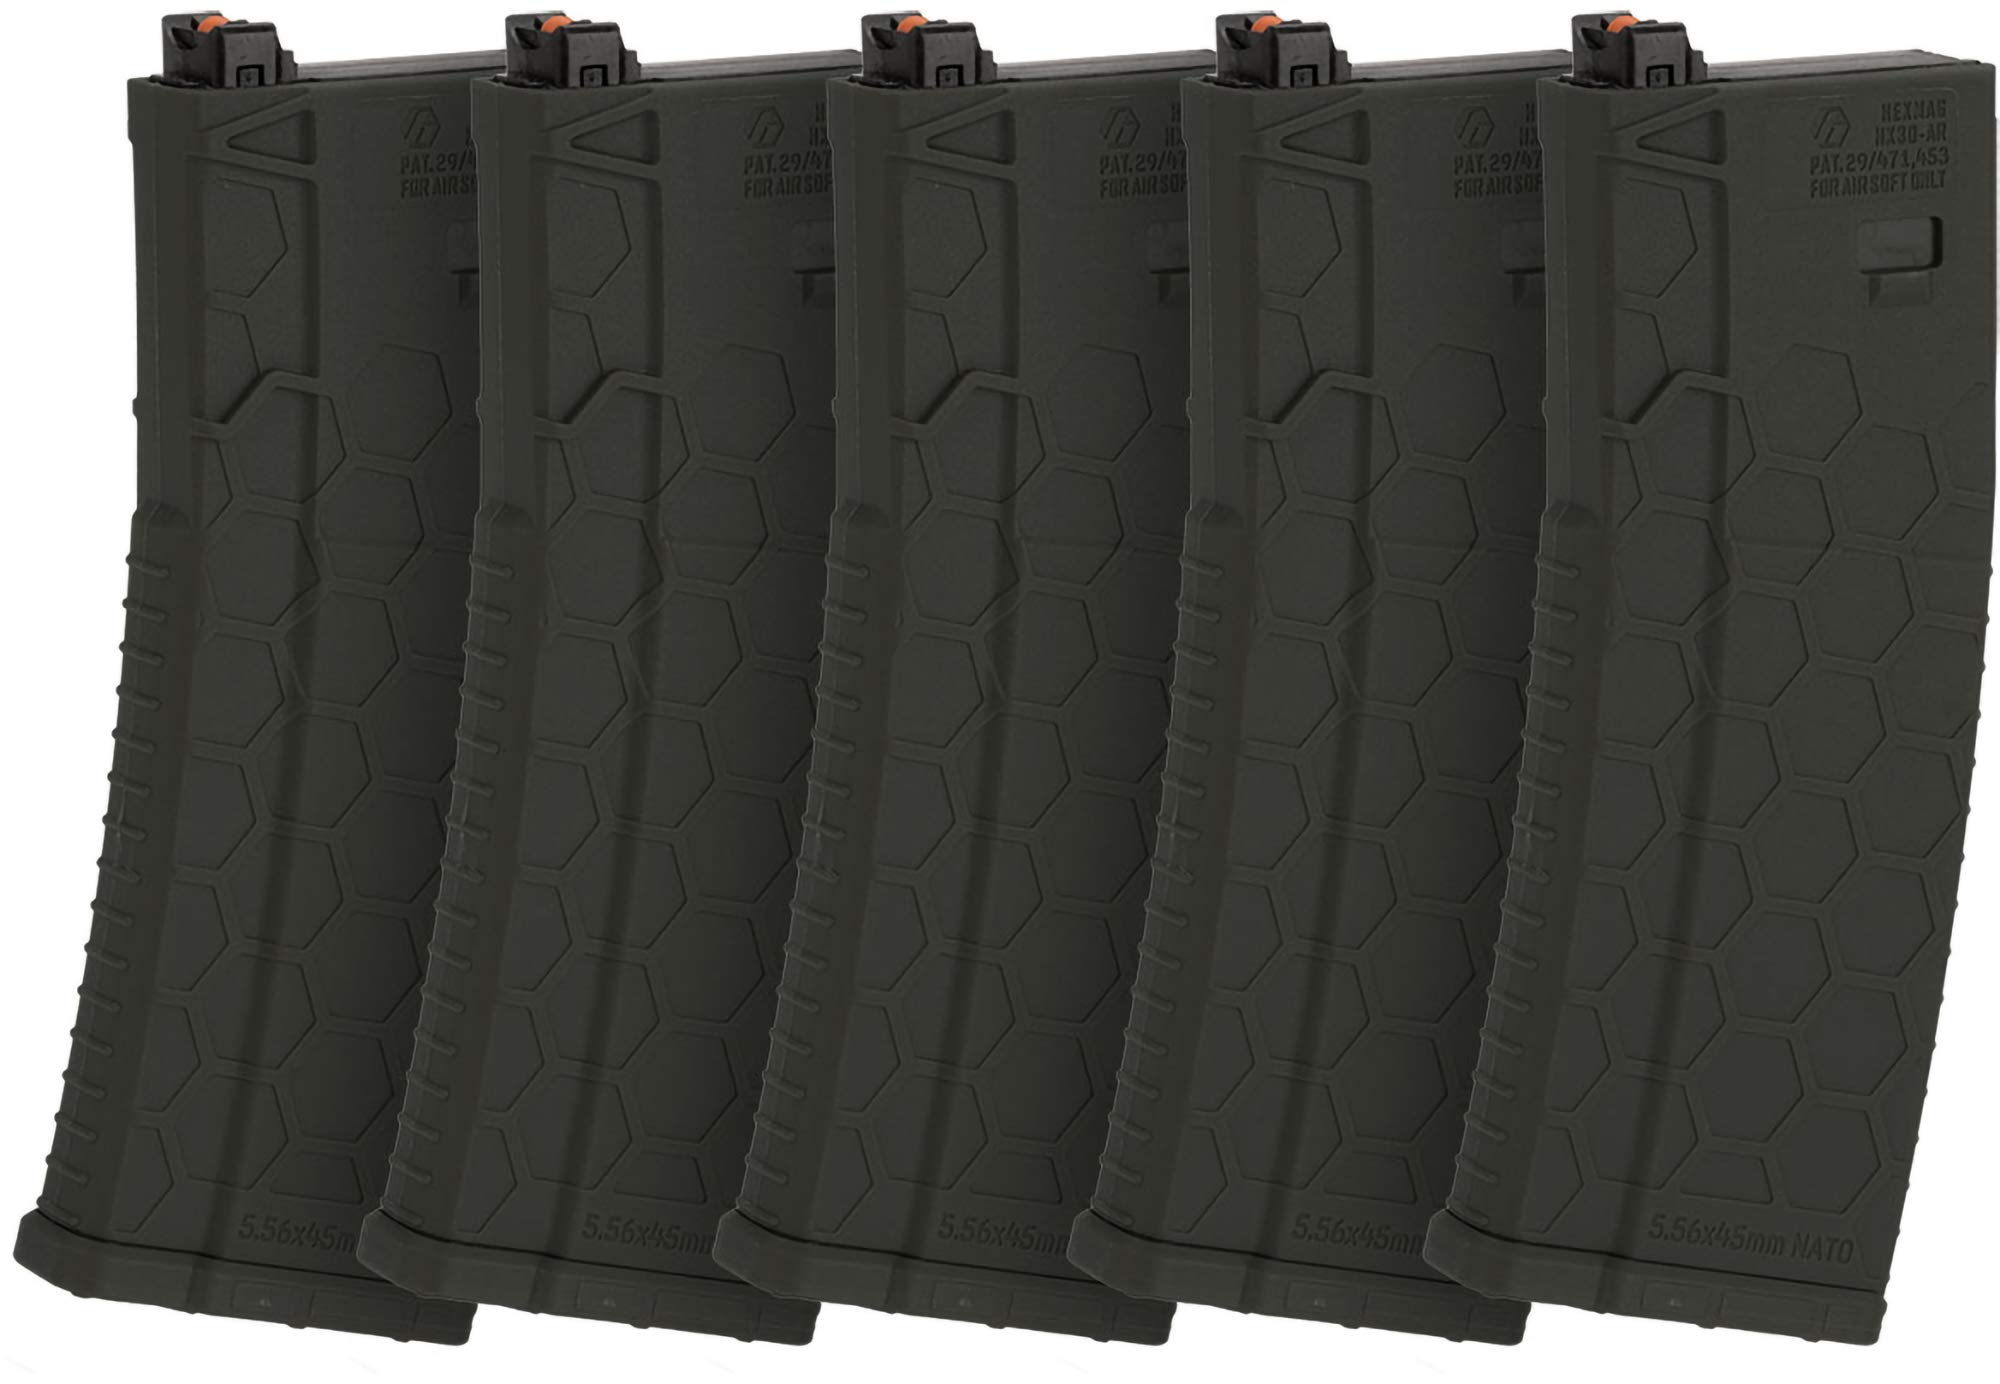 Evike Hexmag Airsoft 120rds Polymer Mid-Cap Magazine for M4 / M16 Series Airsoft PTW Rifles - Box of 5 (Color: OIlive Drab) by Evike